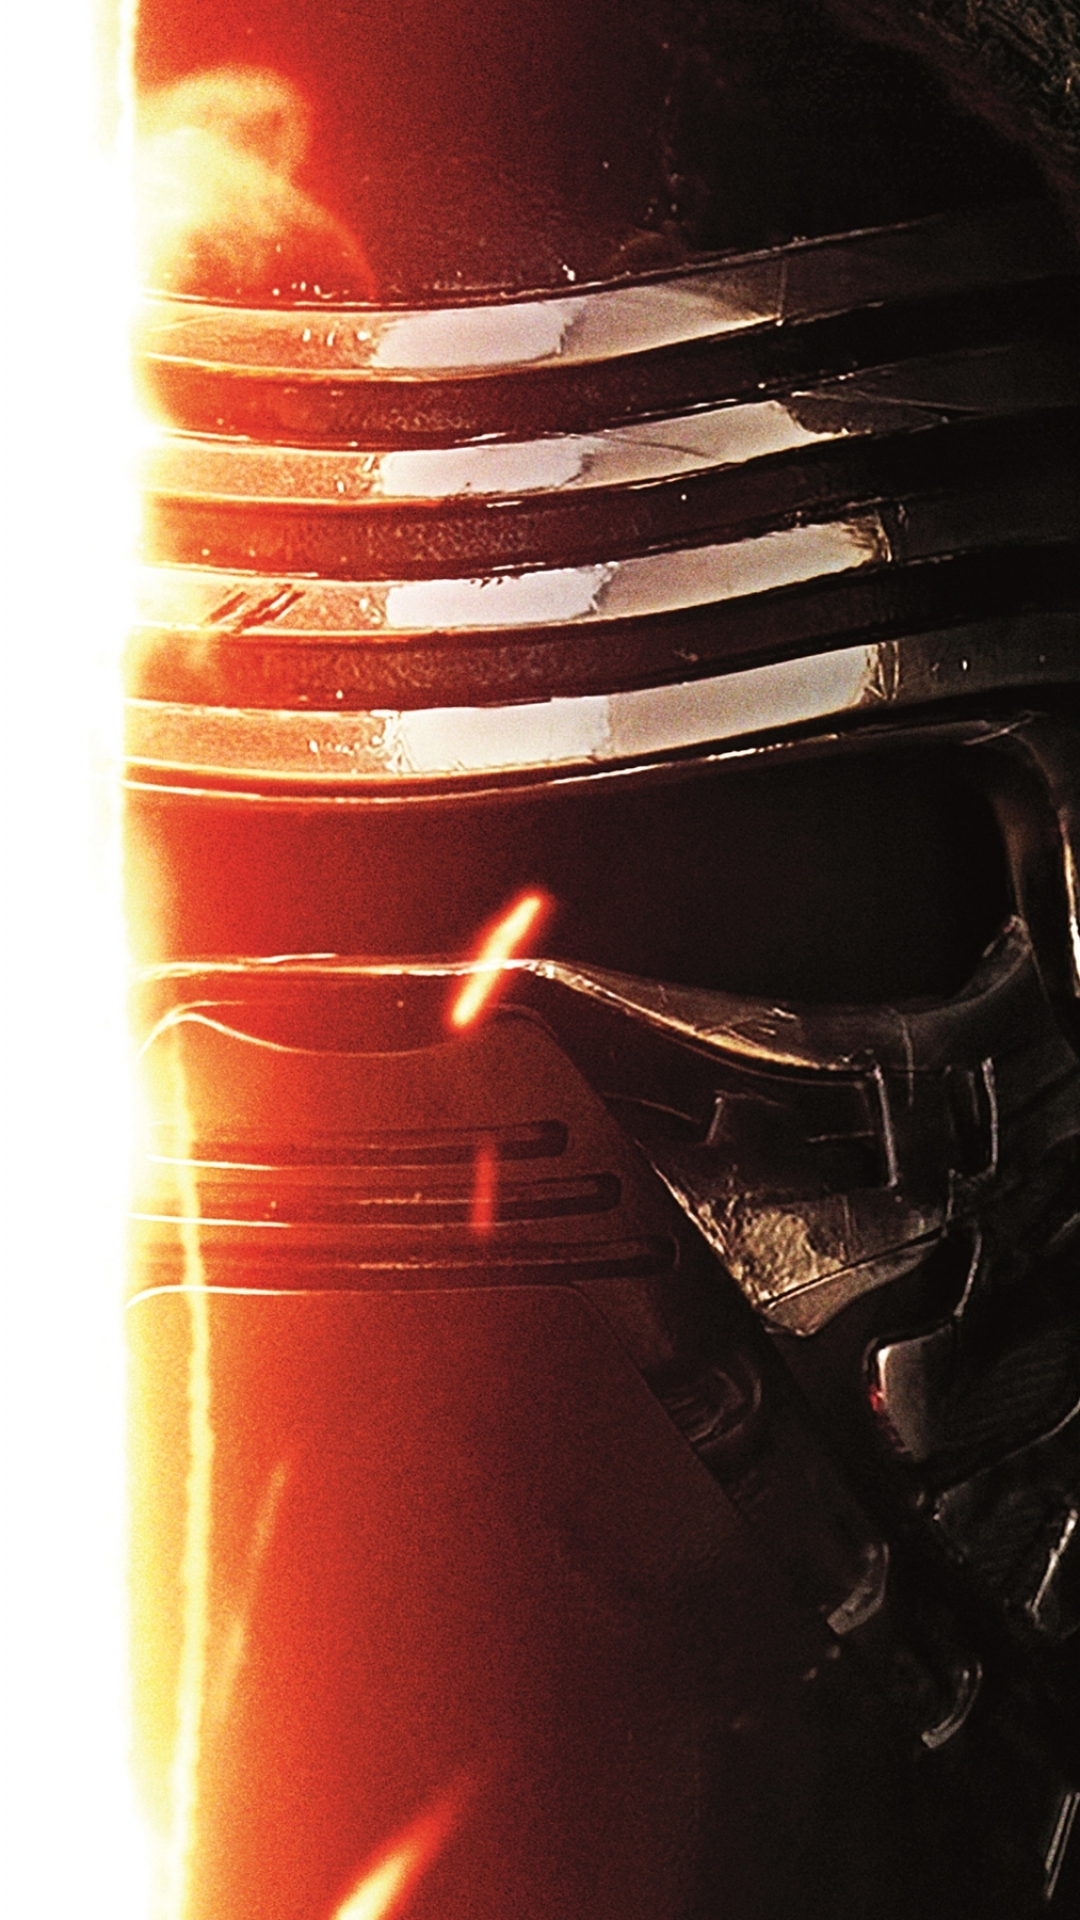 Star Wars The Force Awakens Wallpaper Kylo Ren Lightsaber